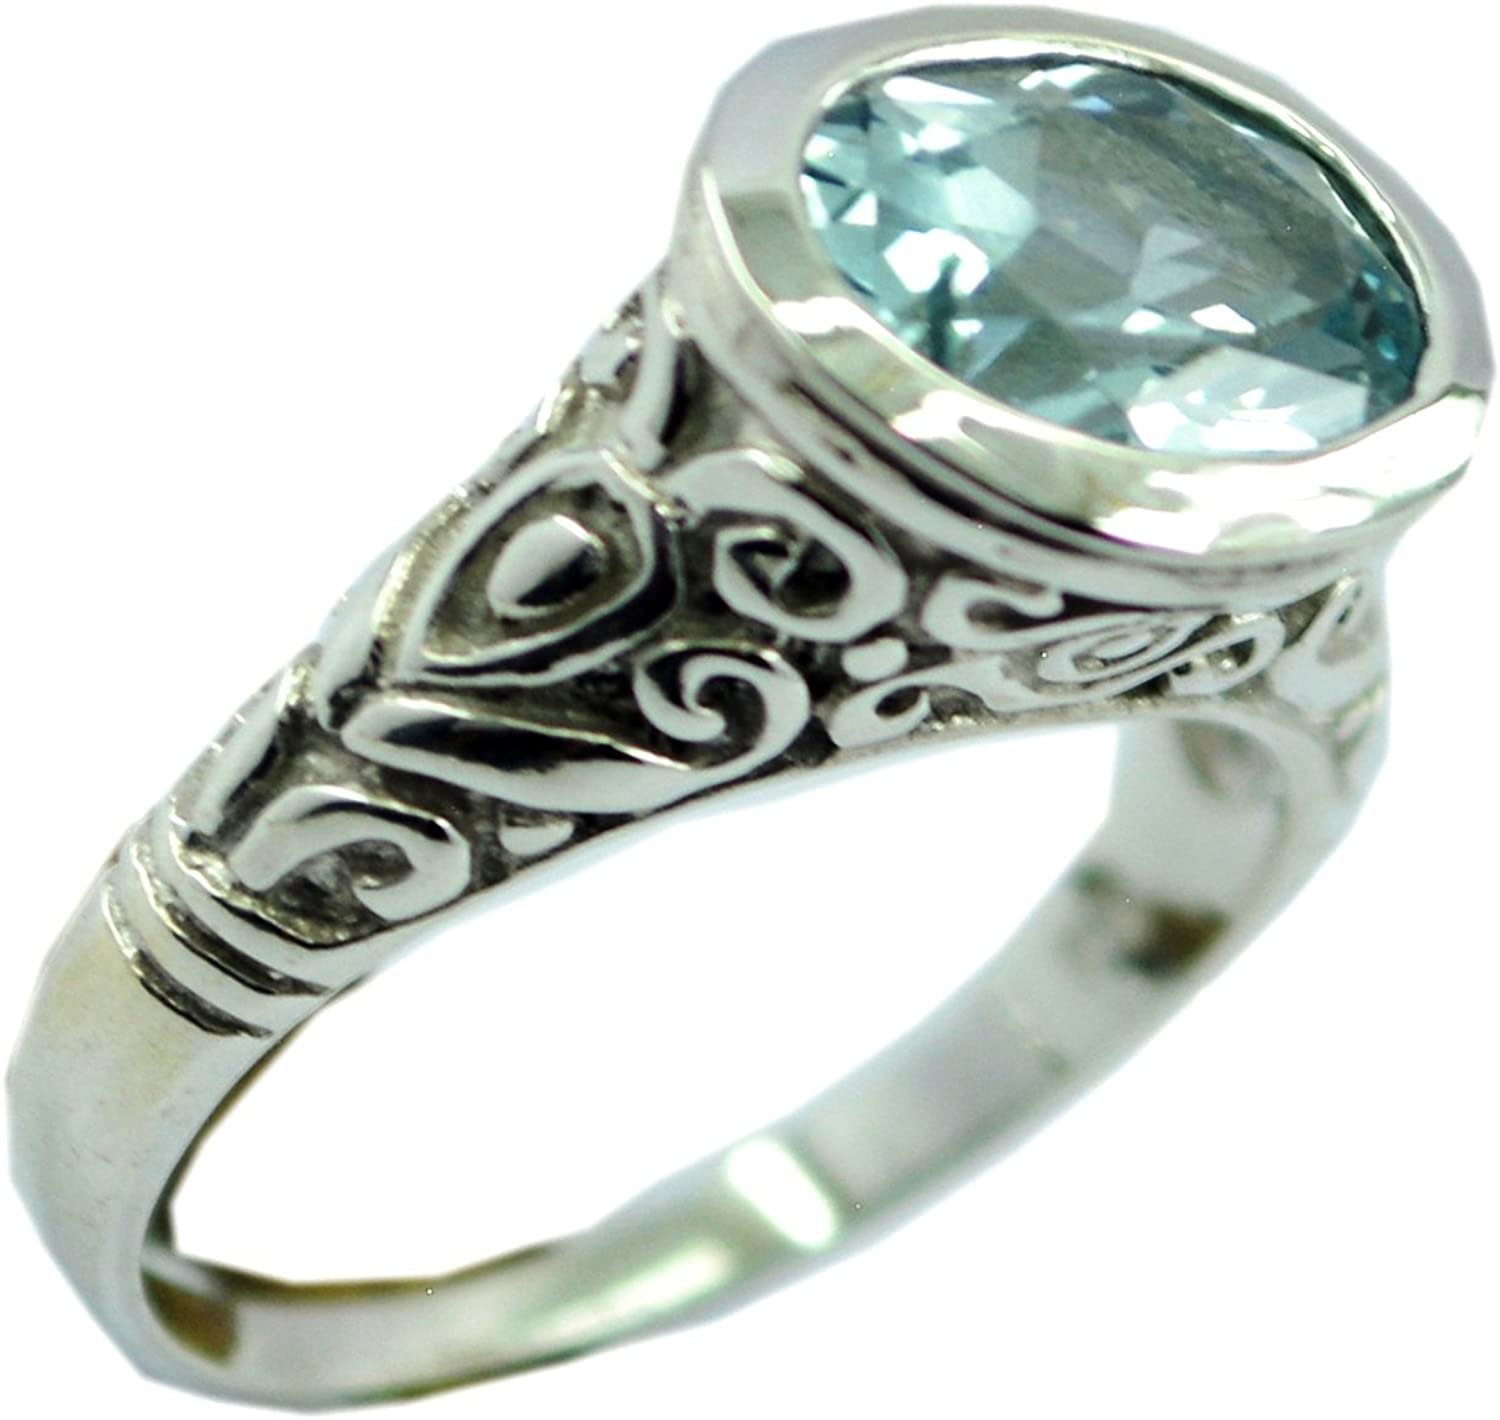 Vintage Octagon Blue Crystal Ring 925 Sterling Silver Ring RG 1090-E